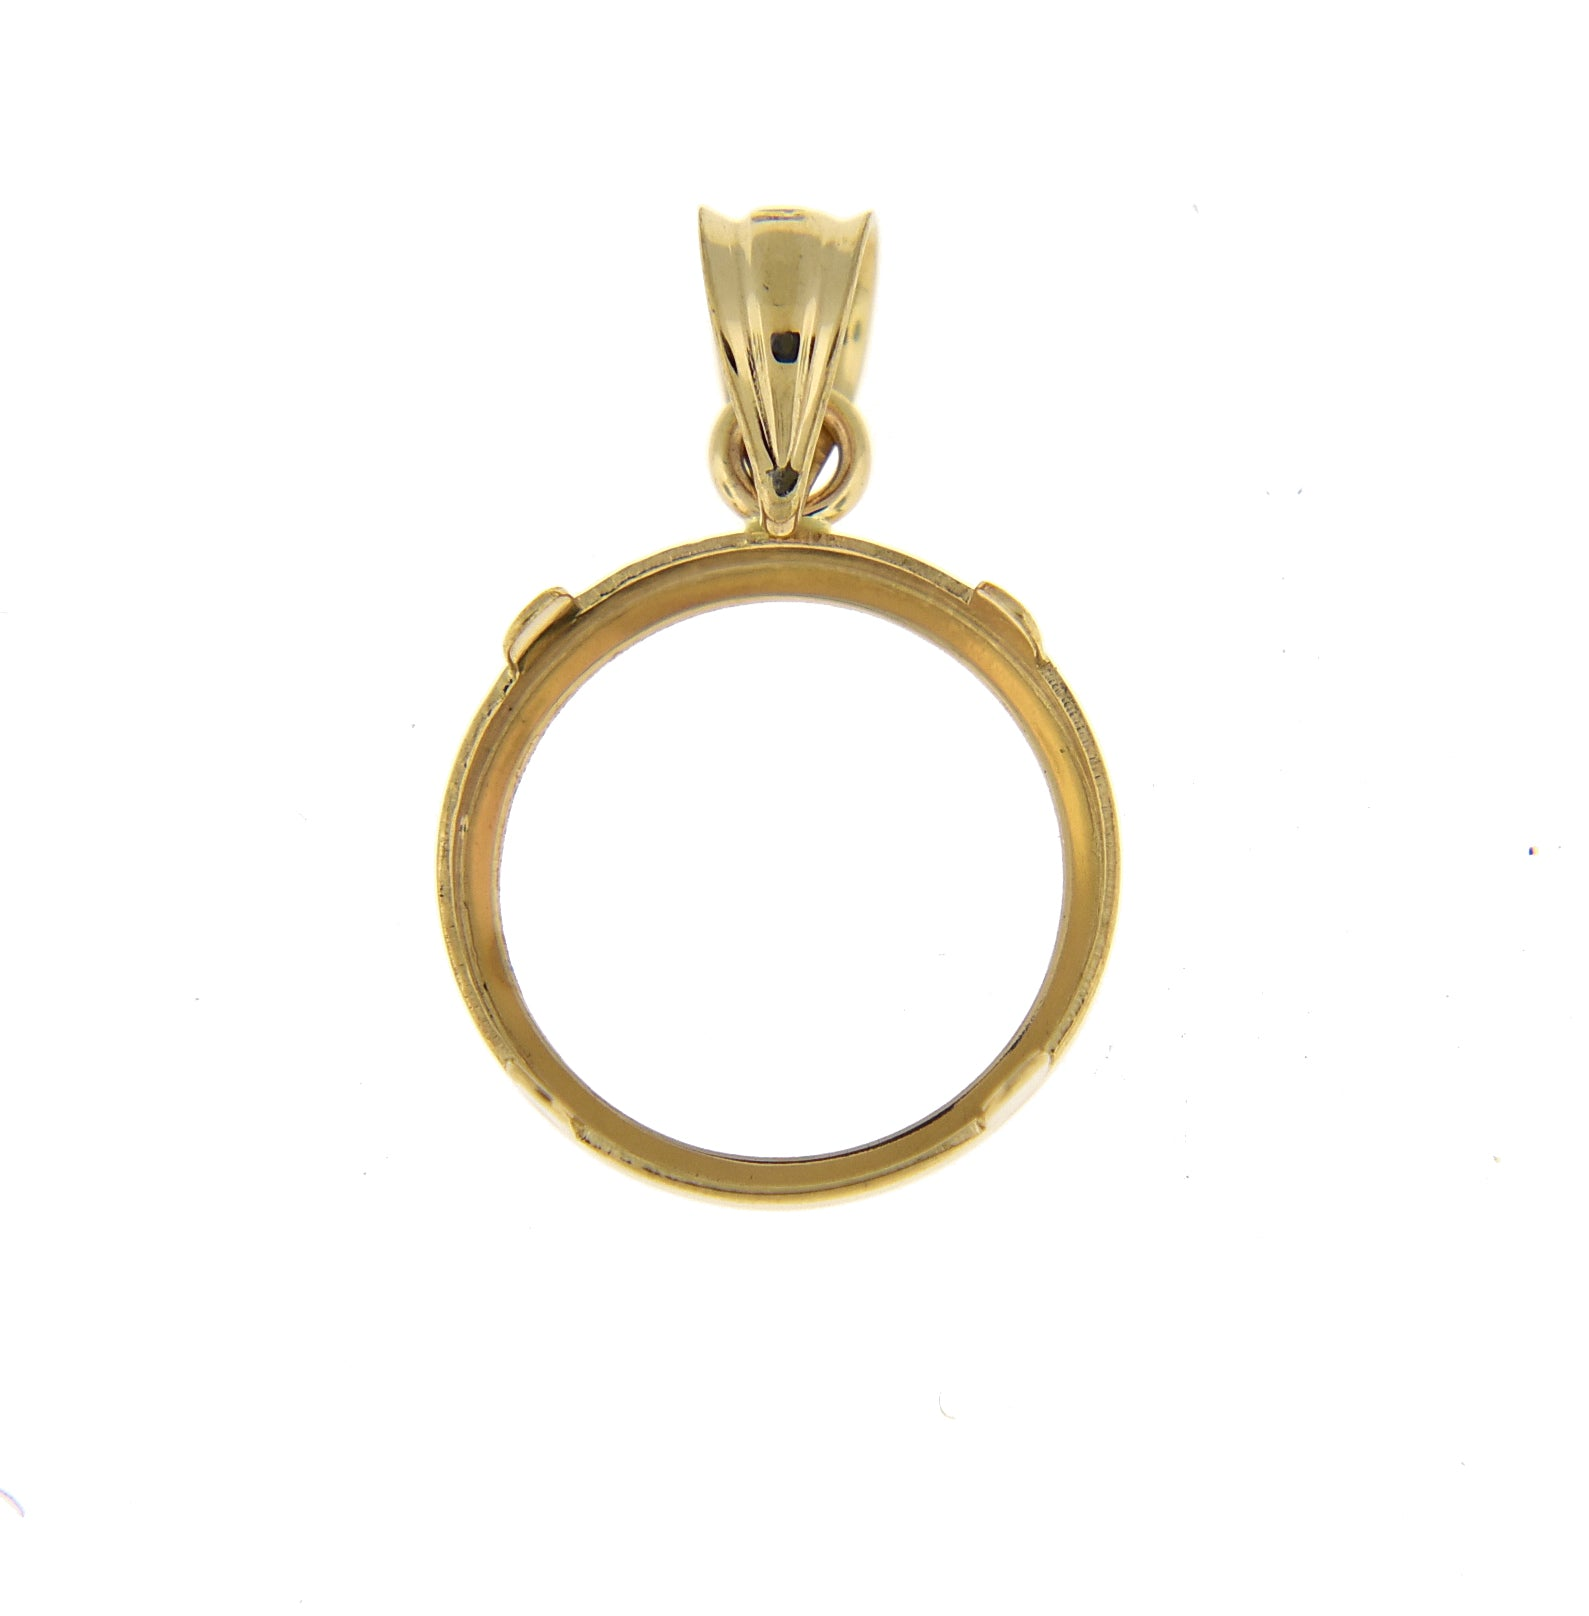 14k Yellow Gold Coin Holder Pendant Charm Holds 13mmx1mm Coins United States US 1 Dollar Mexican 2 Peso